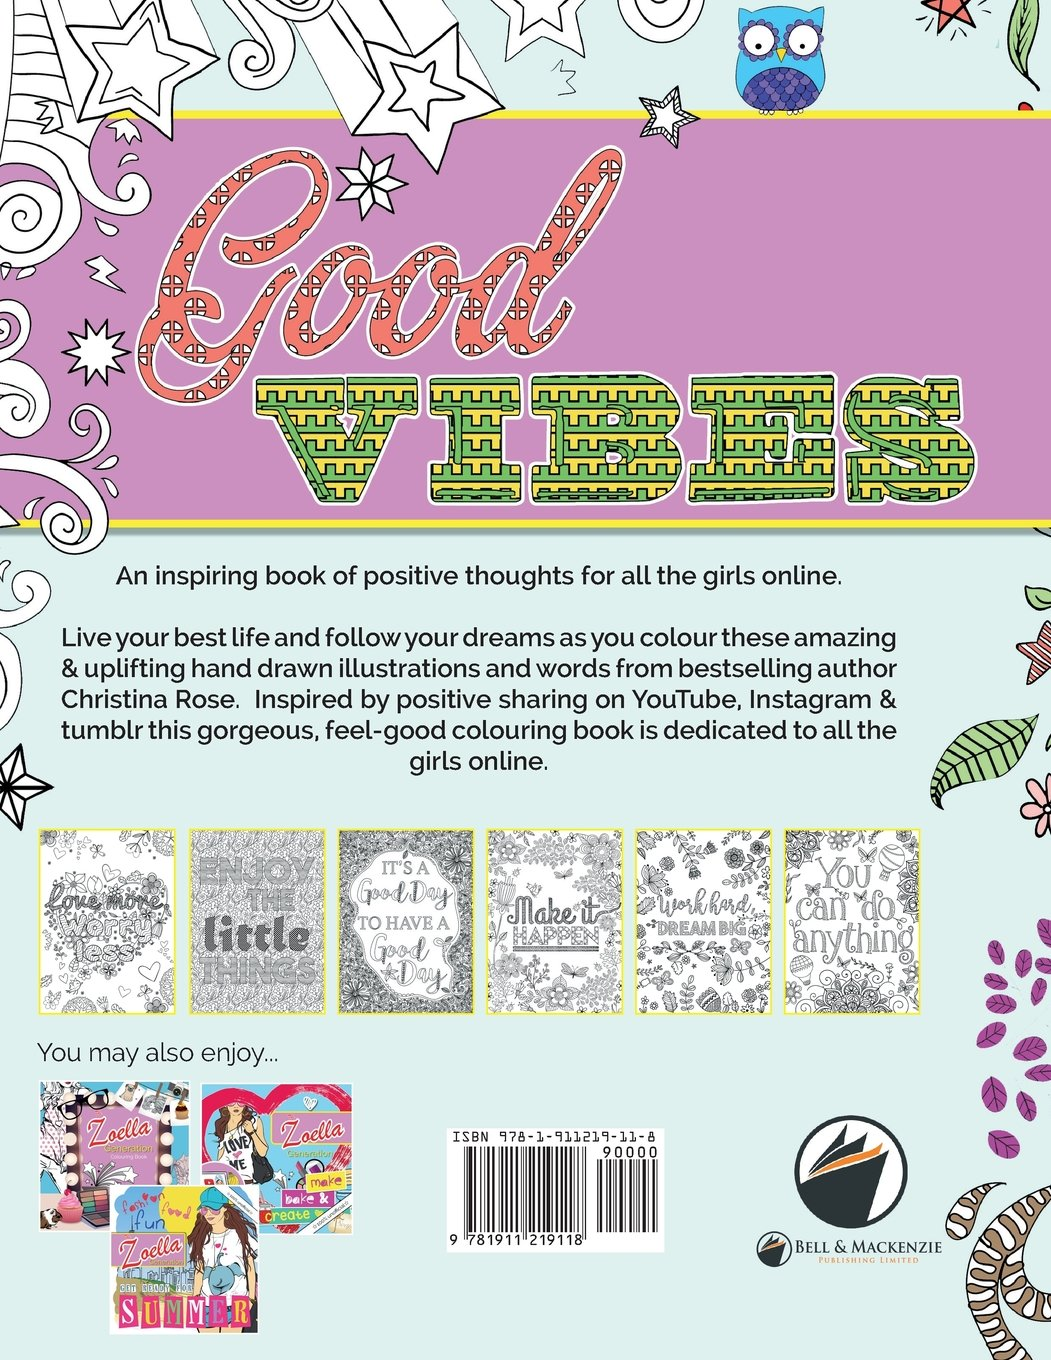 The coloring book of positivity - Amazon Com The Zoella Generation Good Vibes Colouring Book An Inspiring Book Of Positive Thoughts For All The Girls Online 9781911219118 Christina